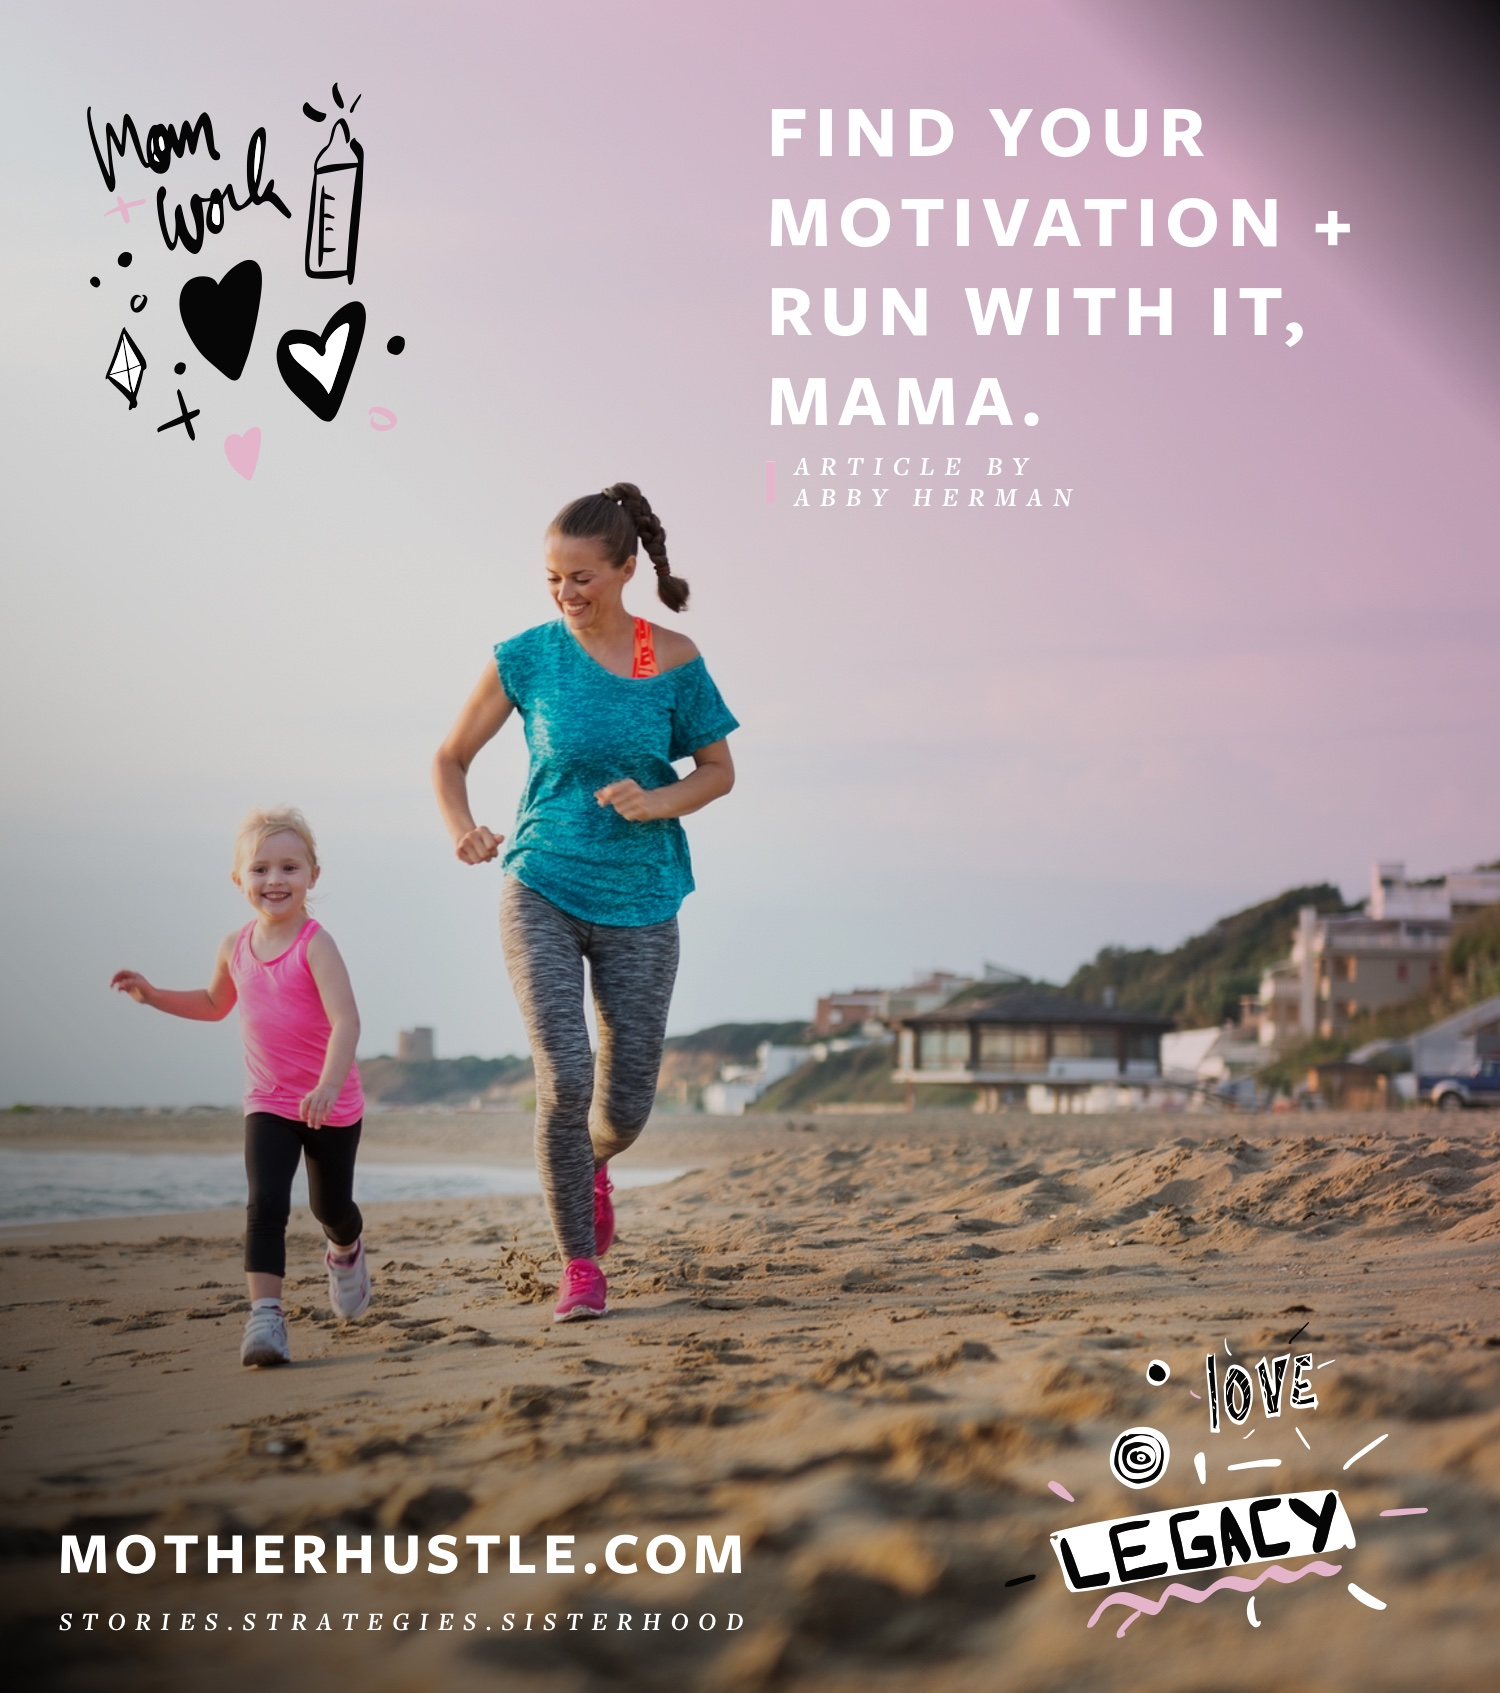 Find Your Motivation + Run With It, Mama. - by Abby Herman for MotherHustle